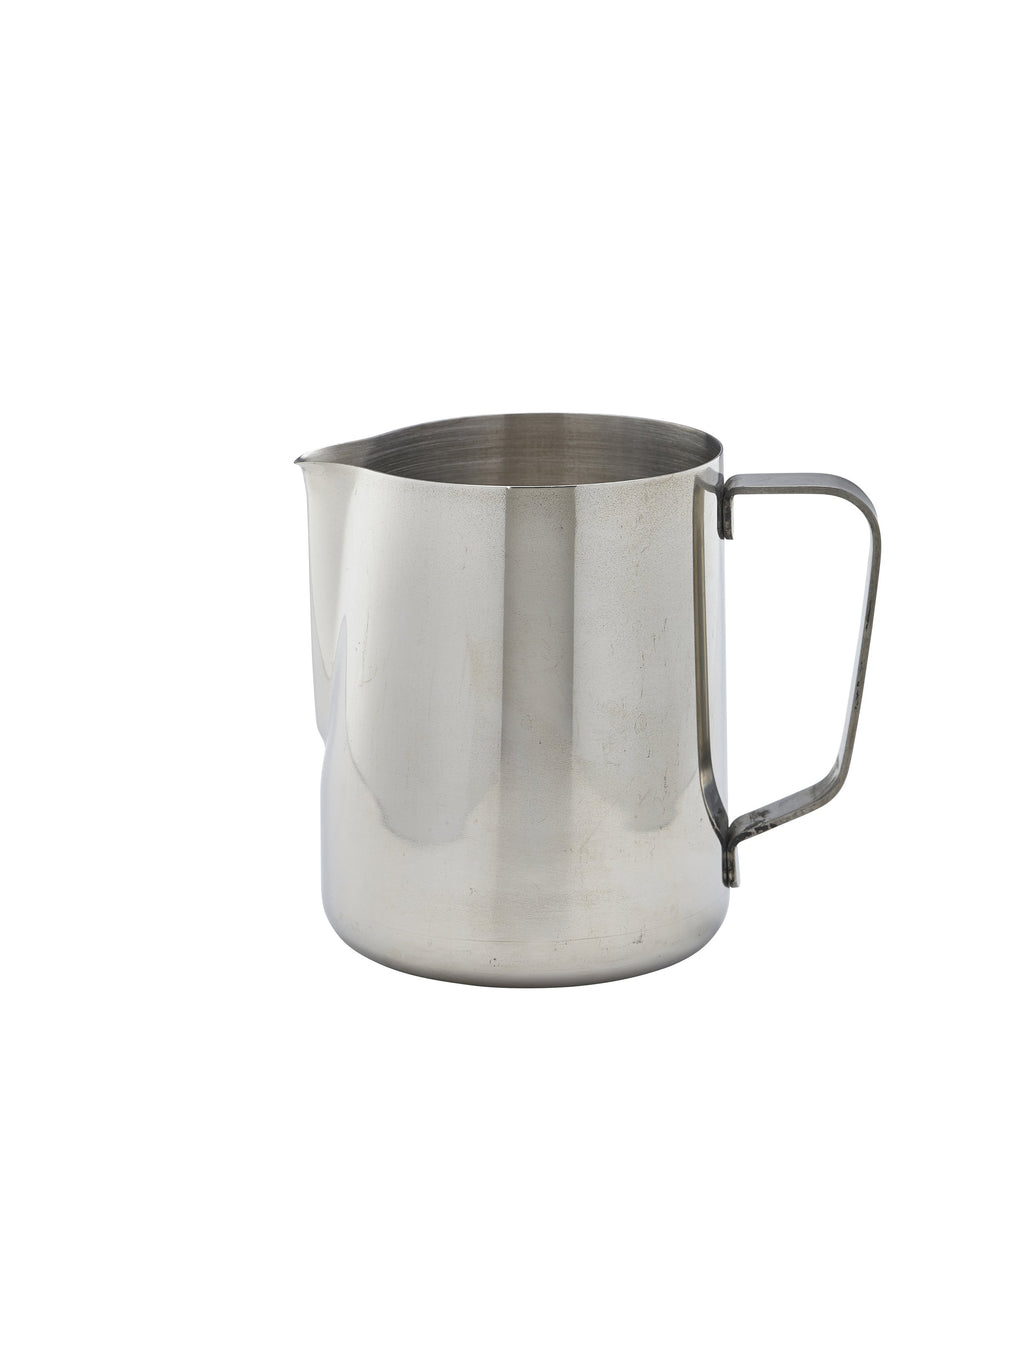 GenWare Stainless Steel Conical Jug 60cl/20oz